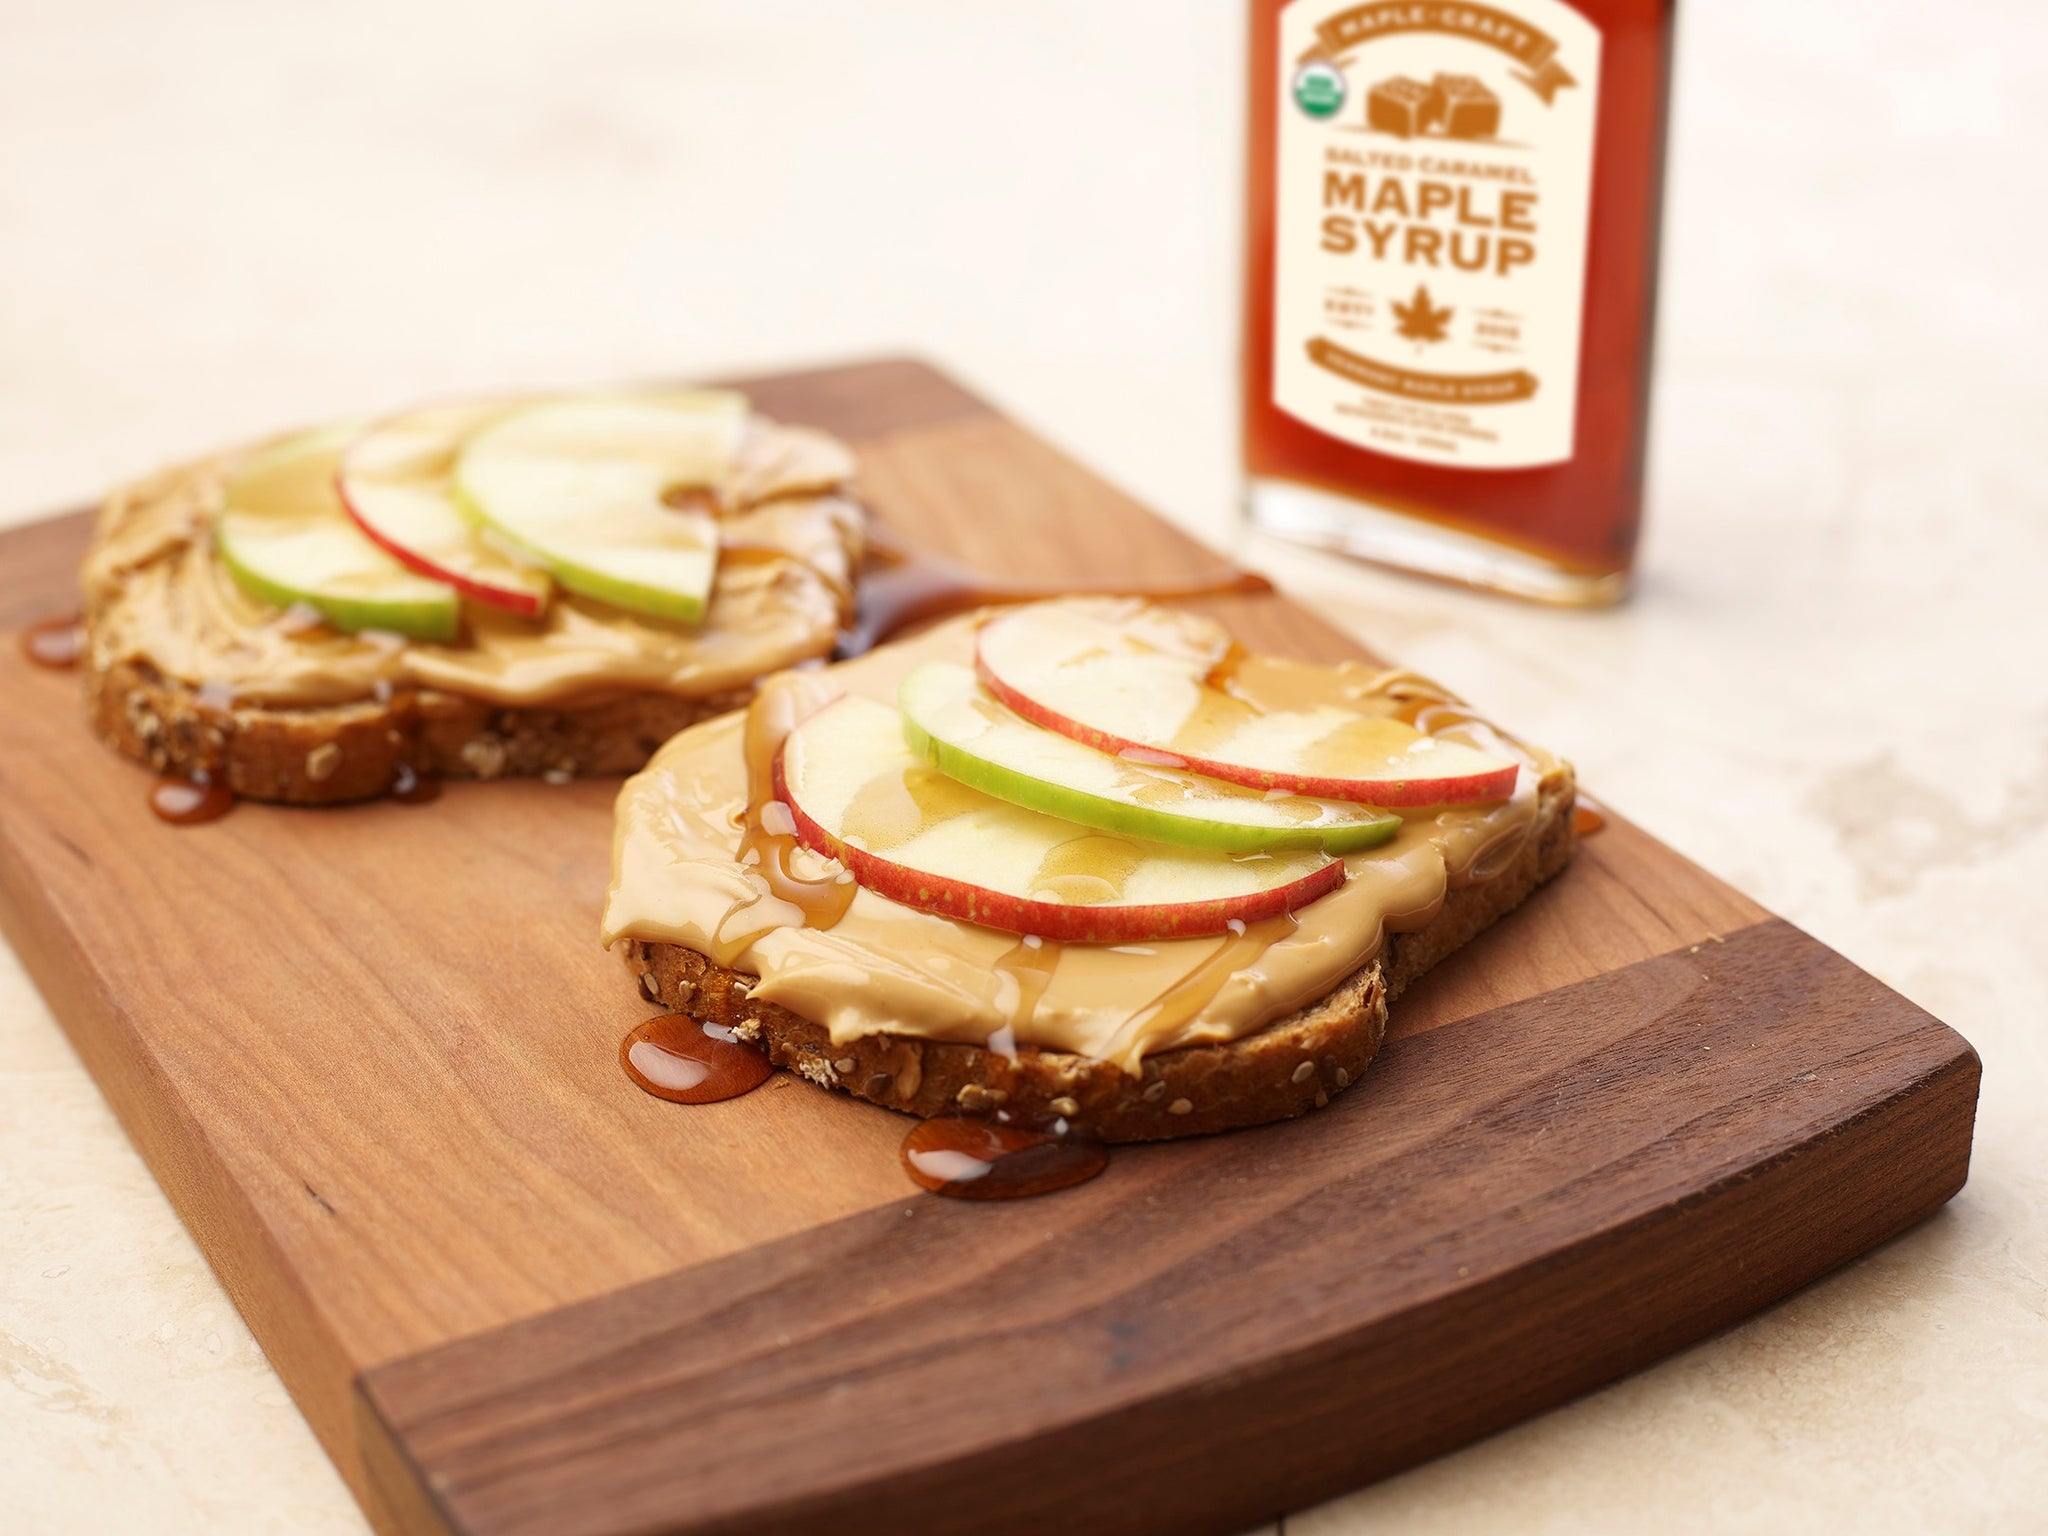 Nut Butter and Caramel Apple Sandwich